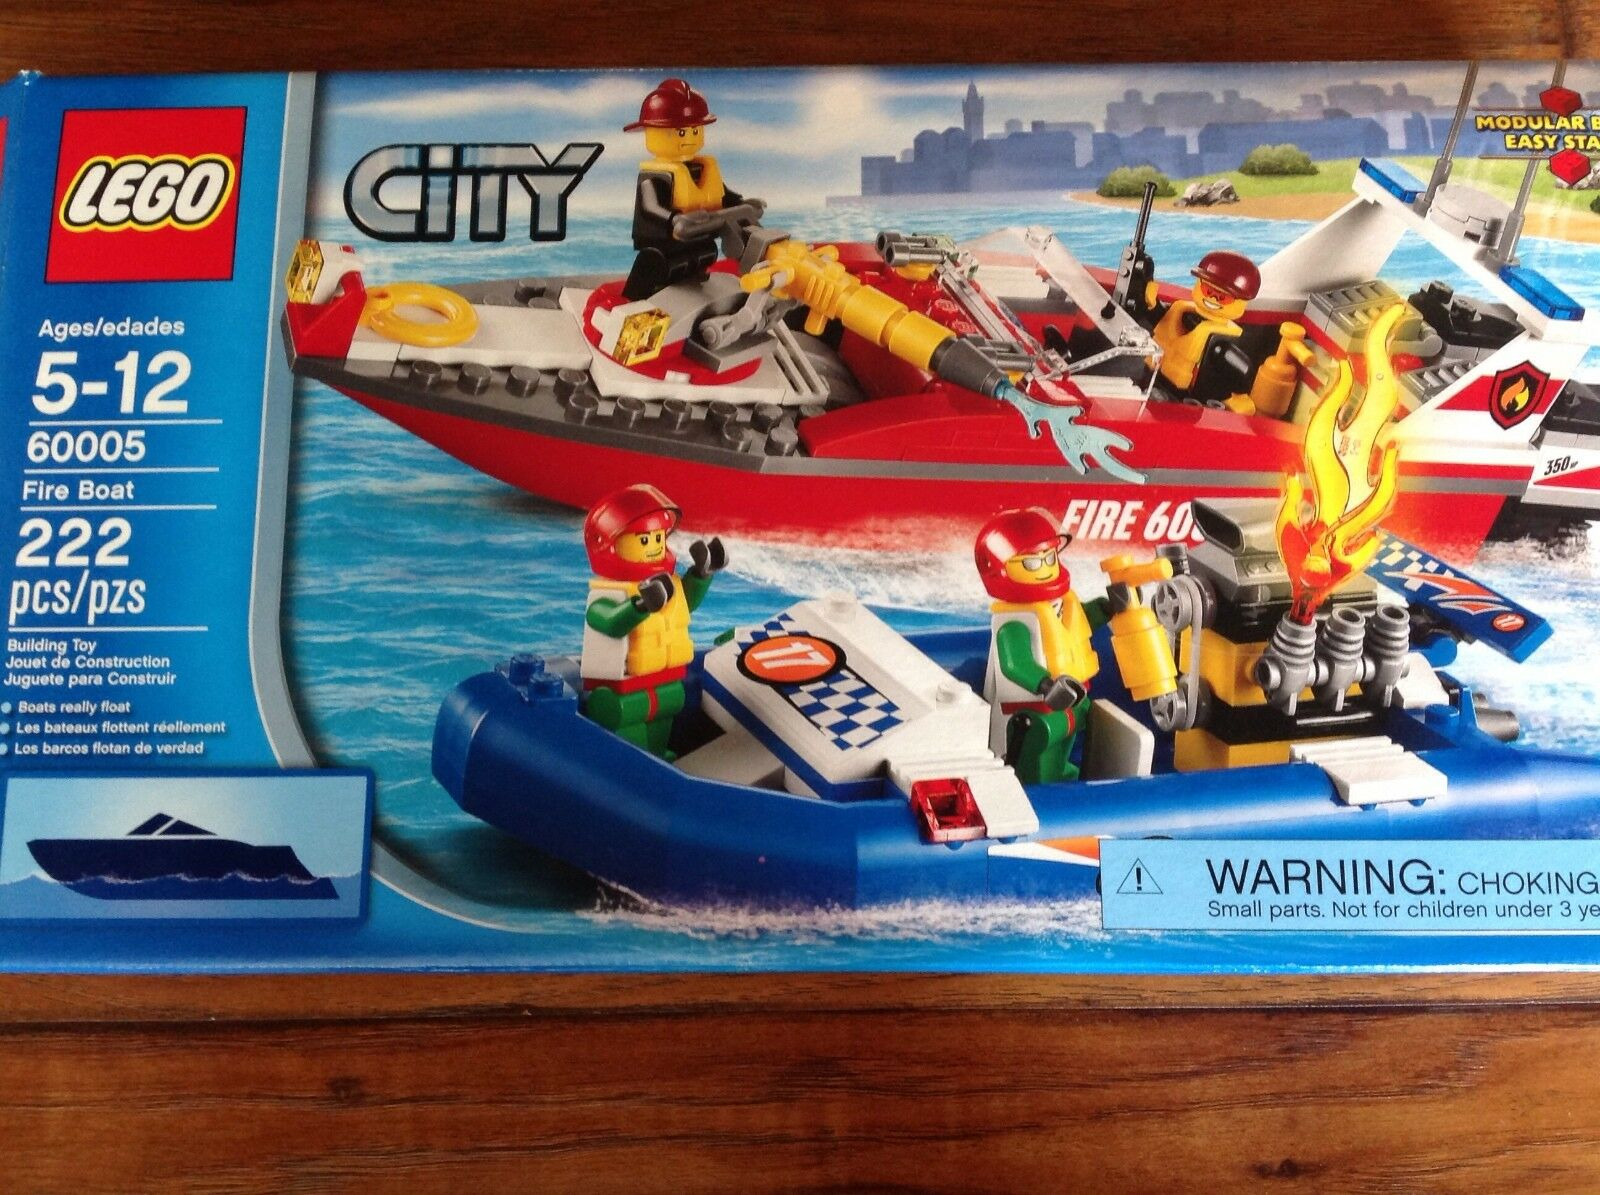 LEGO City 60005 Fire Fire Fire Boat Retired COMPLETE feac86